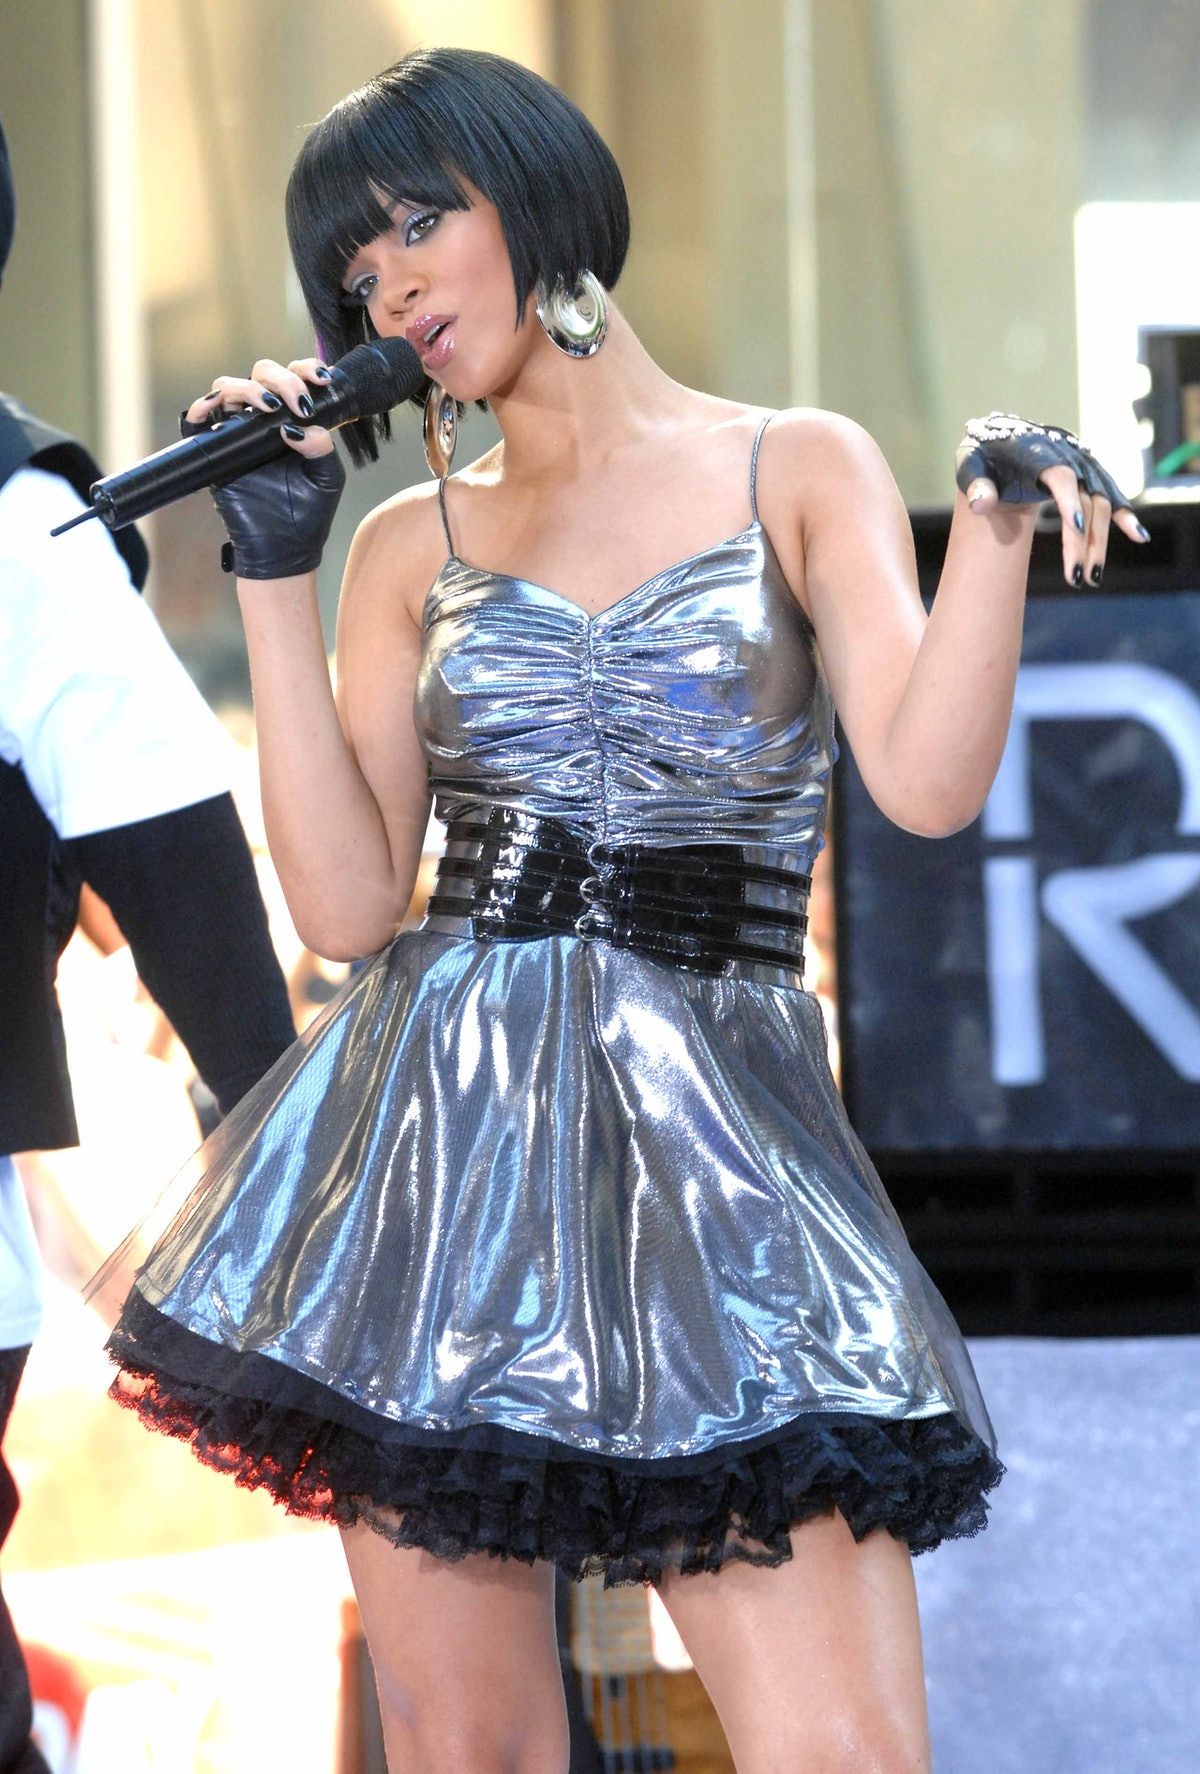 Rihanna hits the stage in a metallic dress.